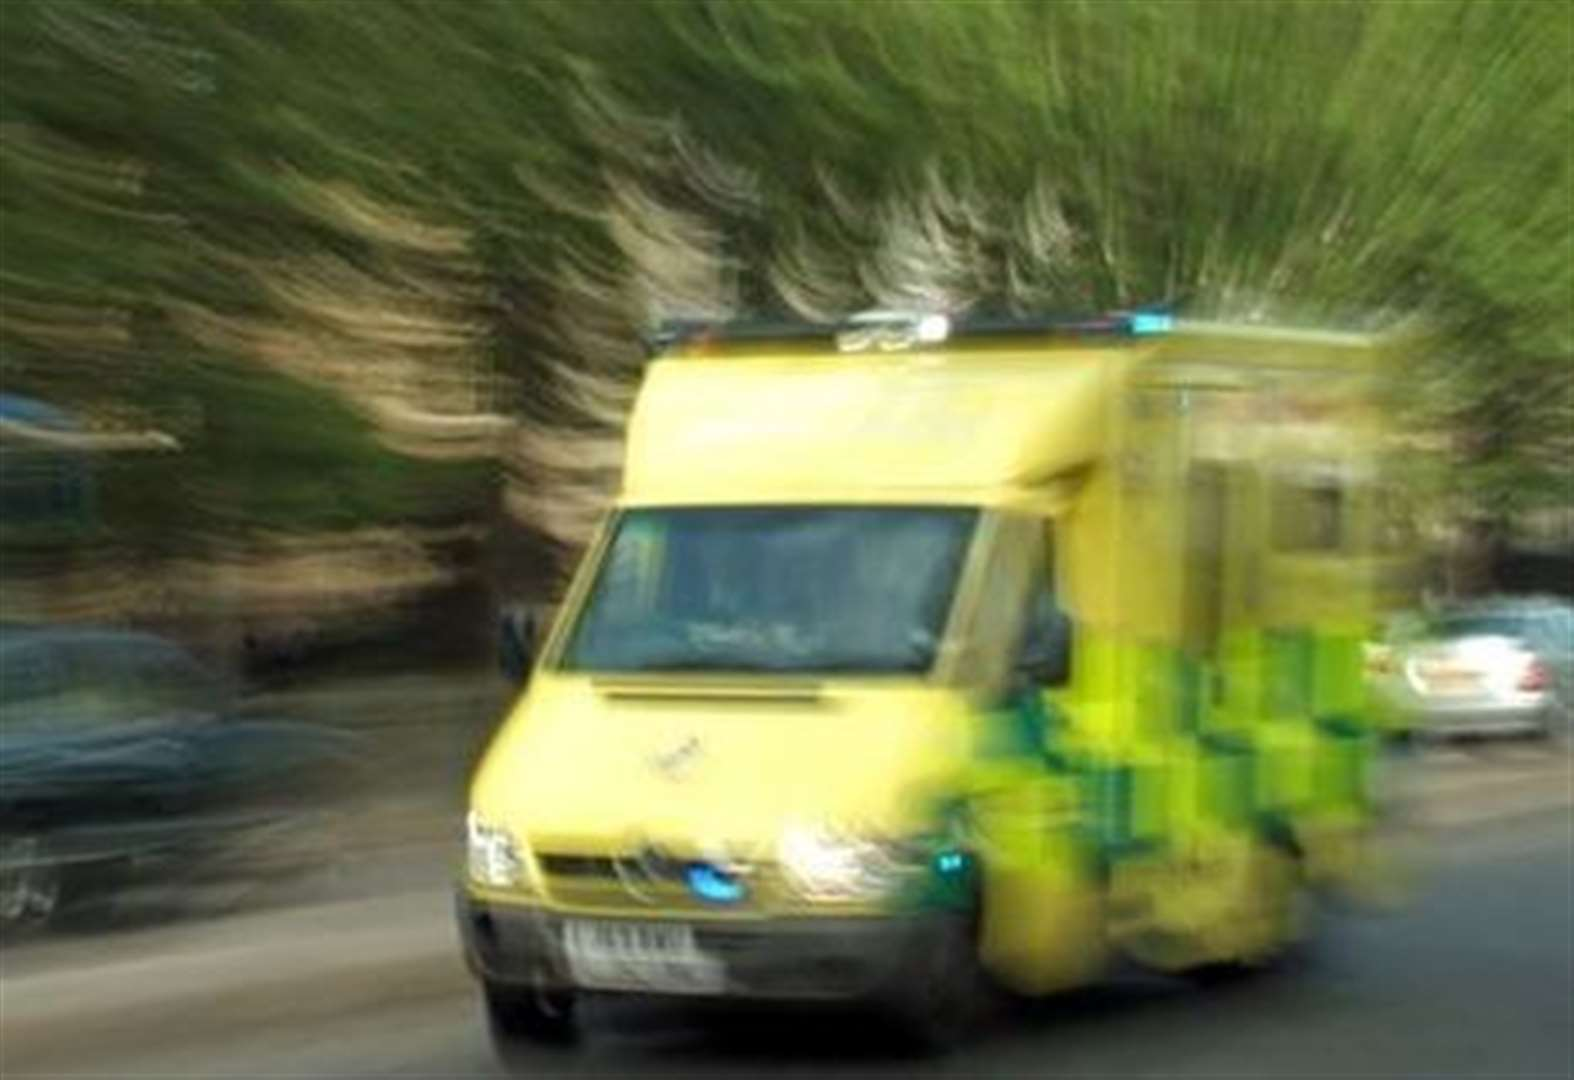 East Midlands Ambulance Service receives more than 1,000 999 calls in first seven hours of New Year's Day